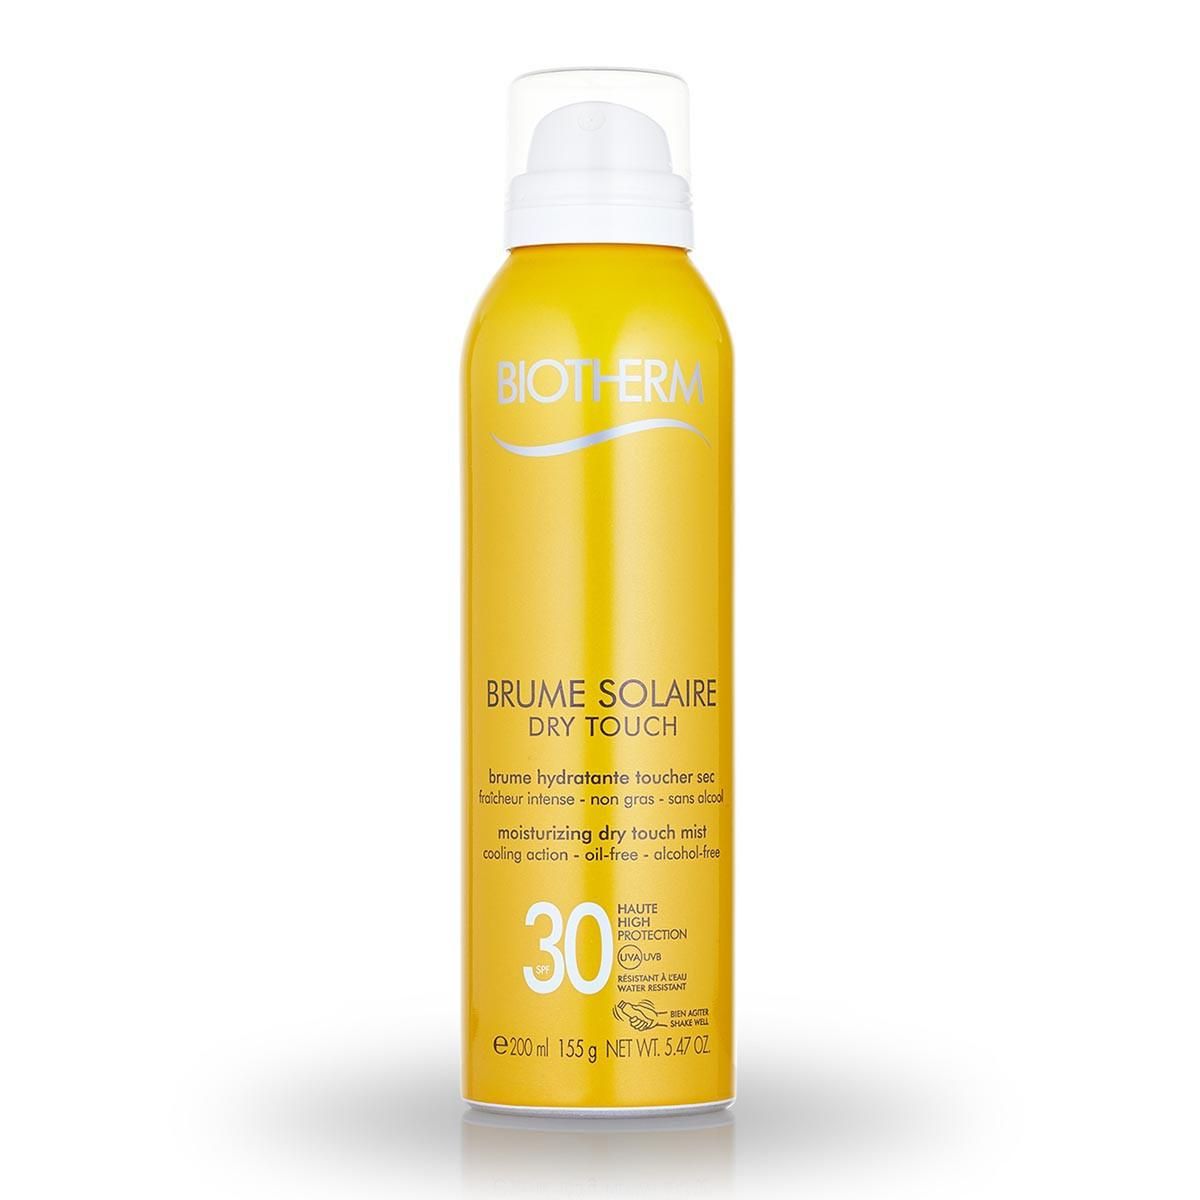 Biotherm-fragrances Brume Solaire Dry Touch Oil Free Spf30 200ml